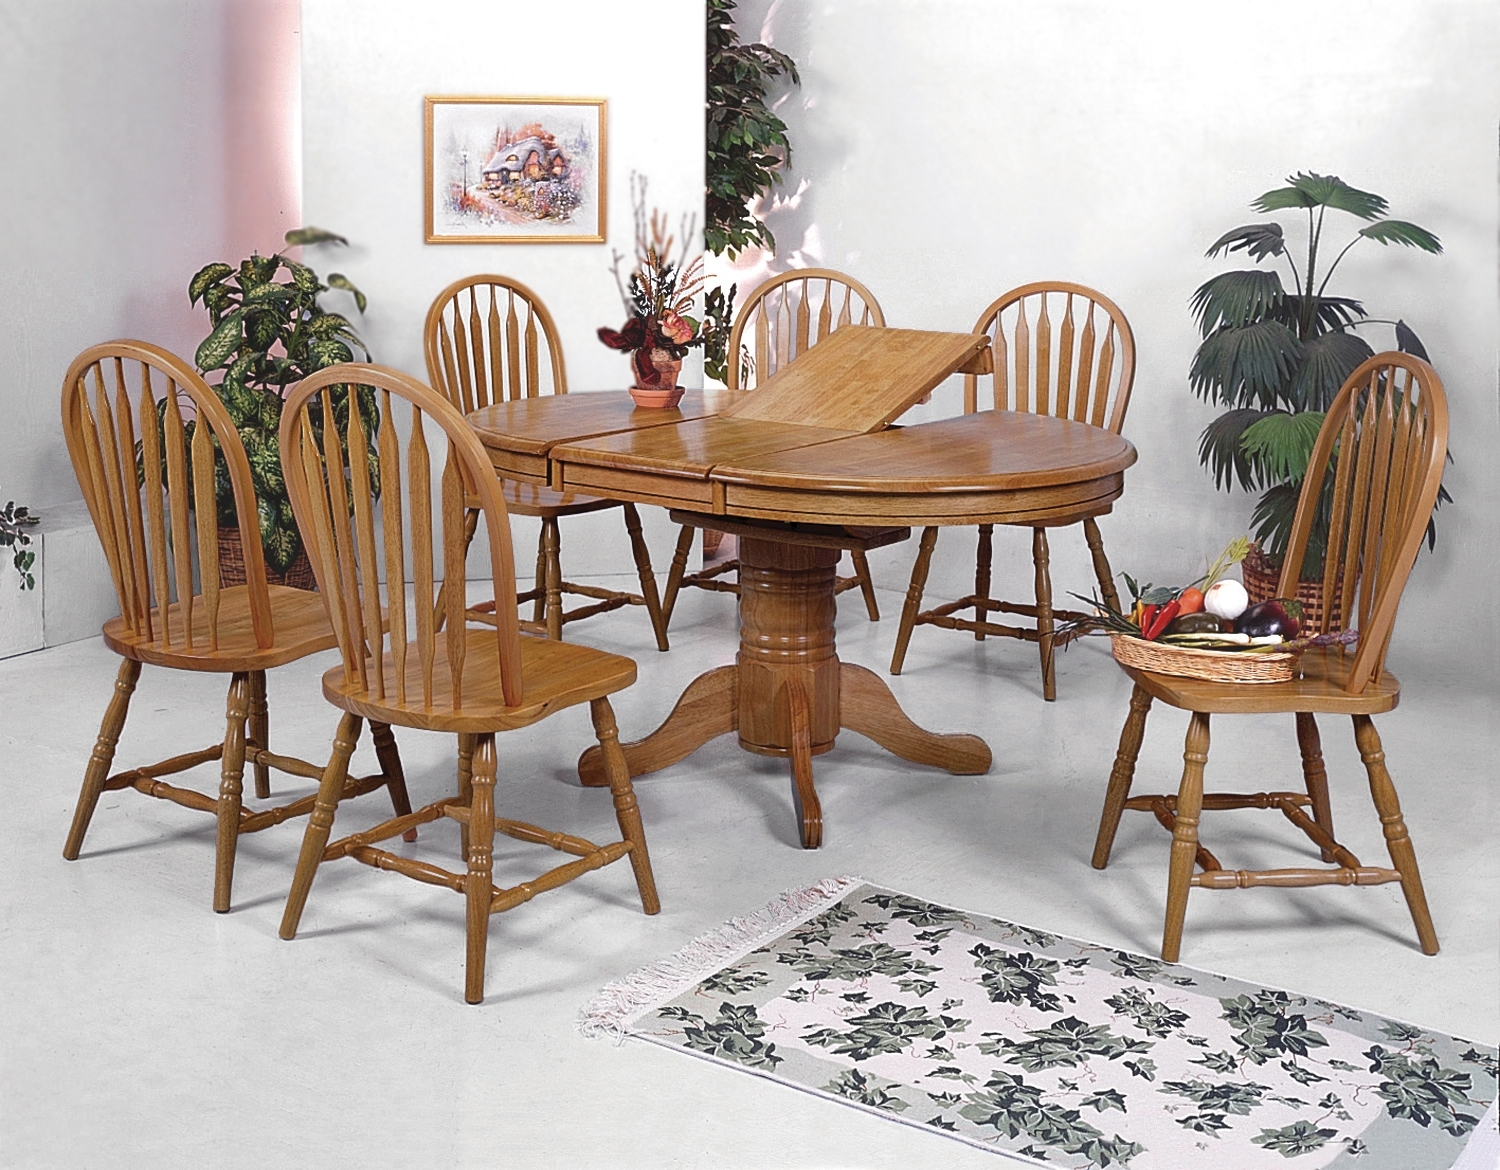 Oval Dining Tables For Sale Throughout Most Up To Date Solid Wood Oval Dining Table With 4 Chairs! – Dream Rooms Furniture (View 18 of 25)